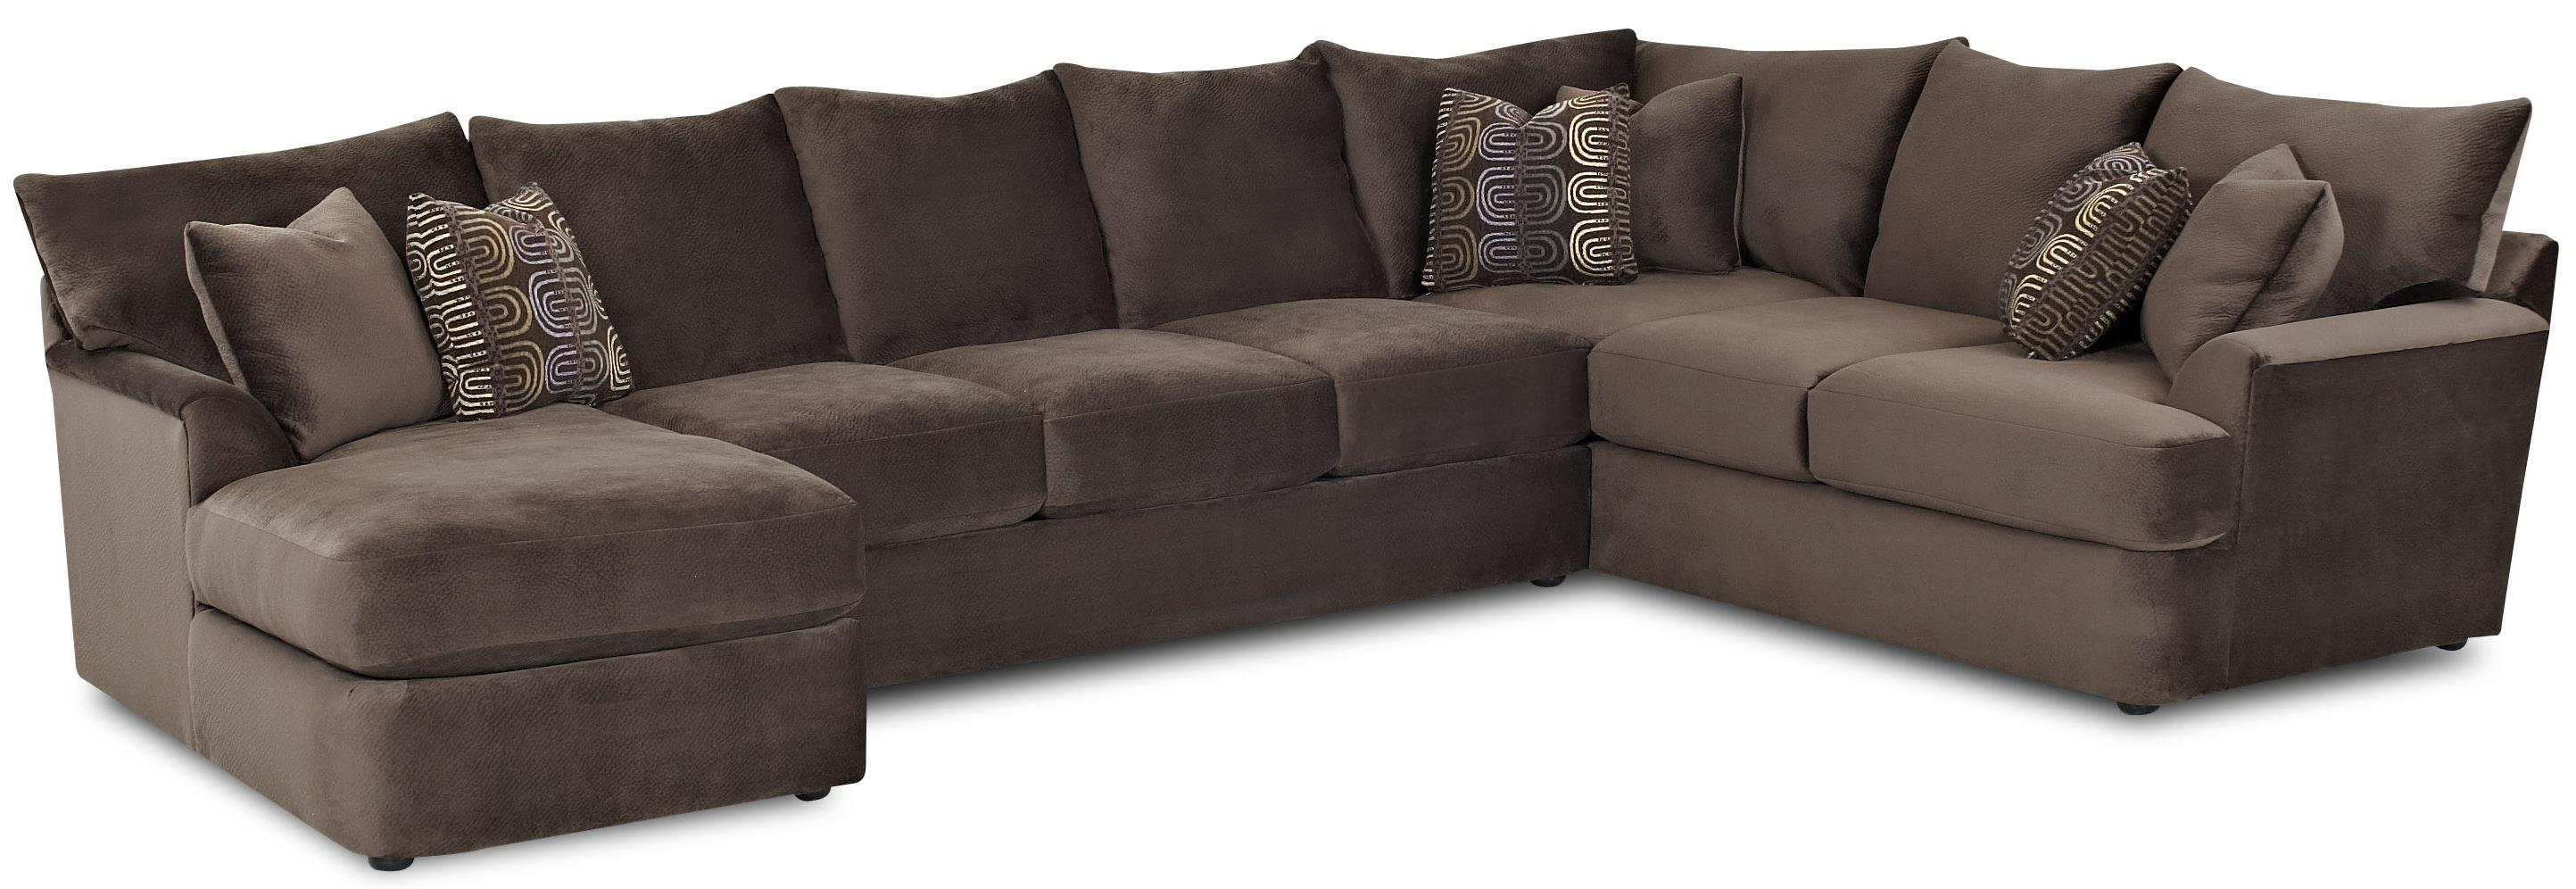 l shaped couch klaussner findley sectional - item number: k56830l chase+as+r crns FPFUXGR